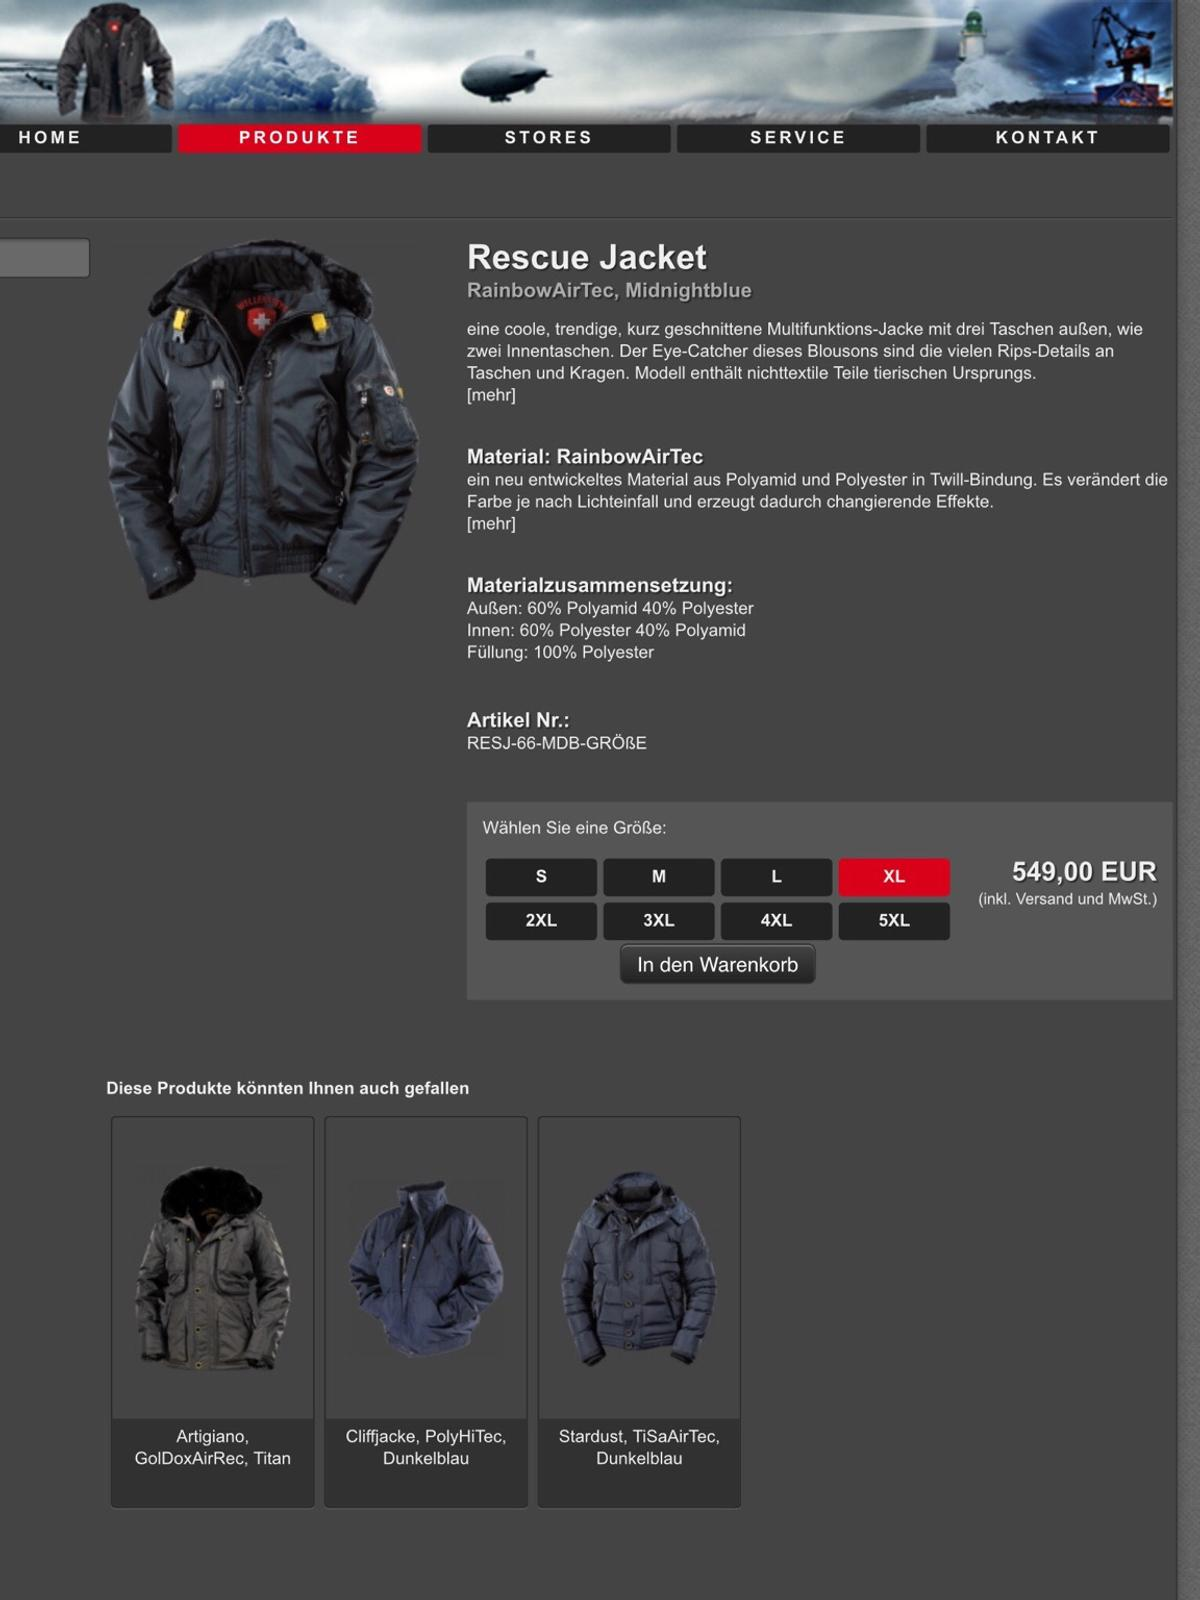 Wellensteyn Rescue Jacket, Midnightblue